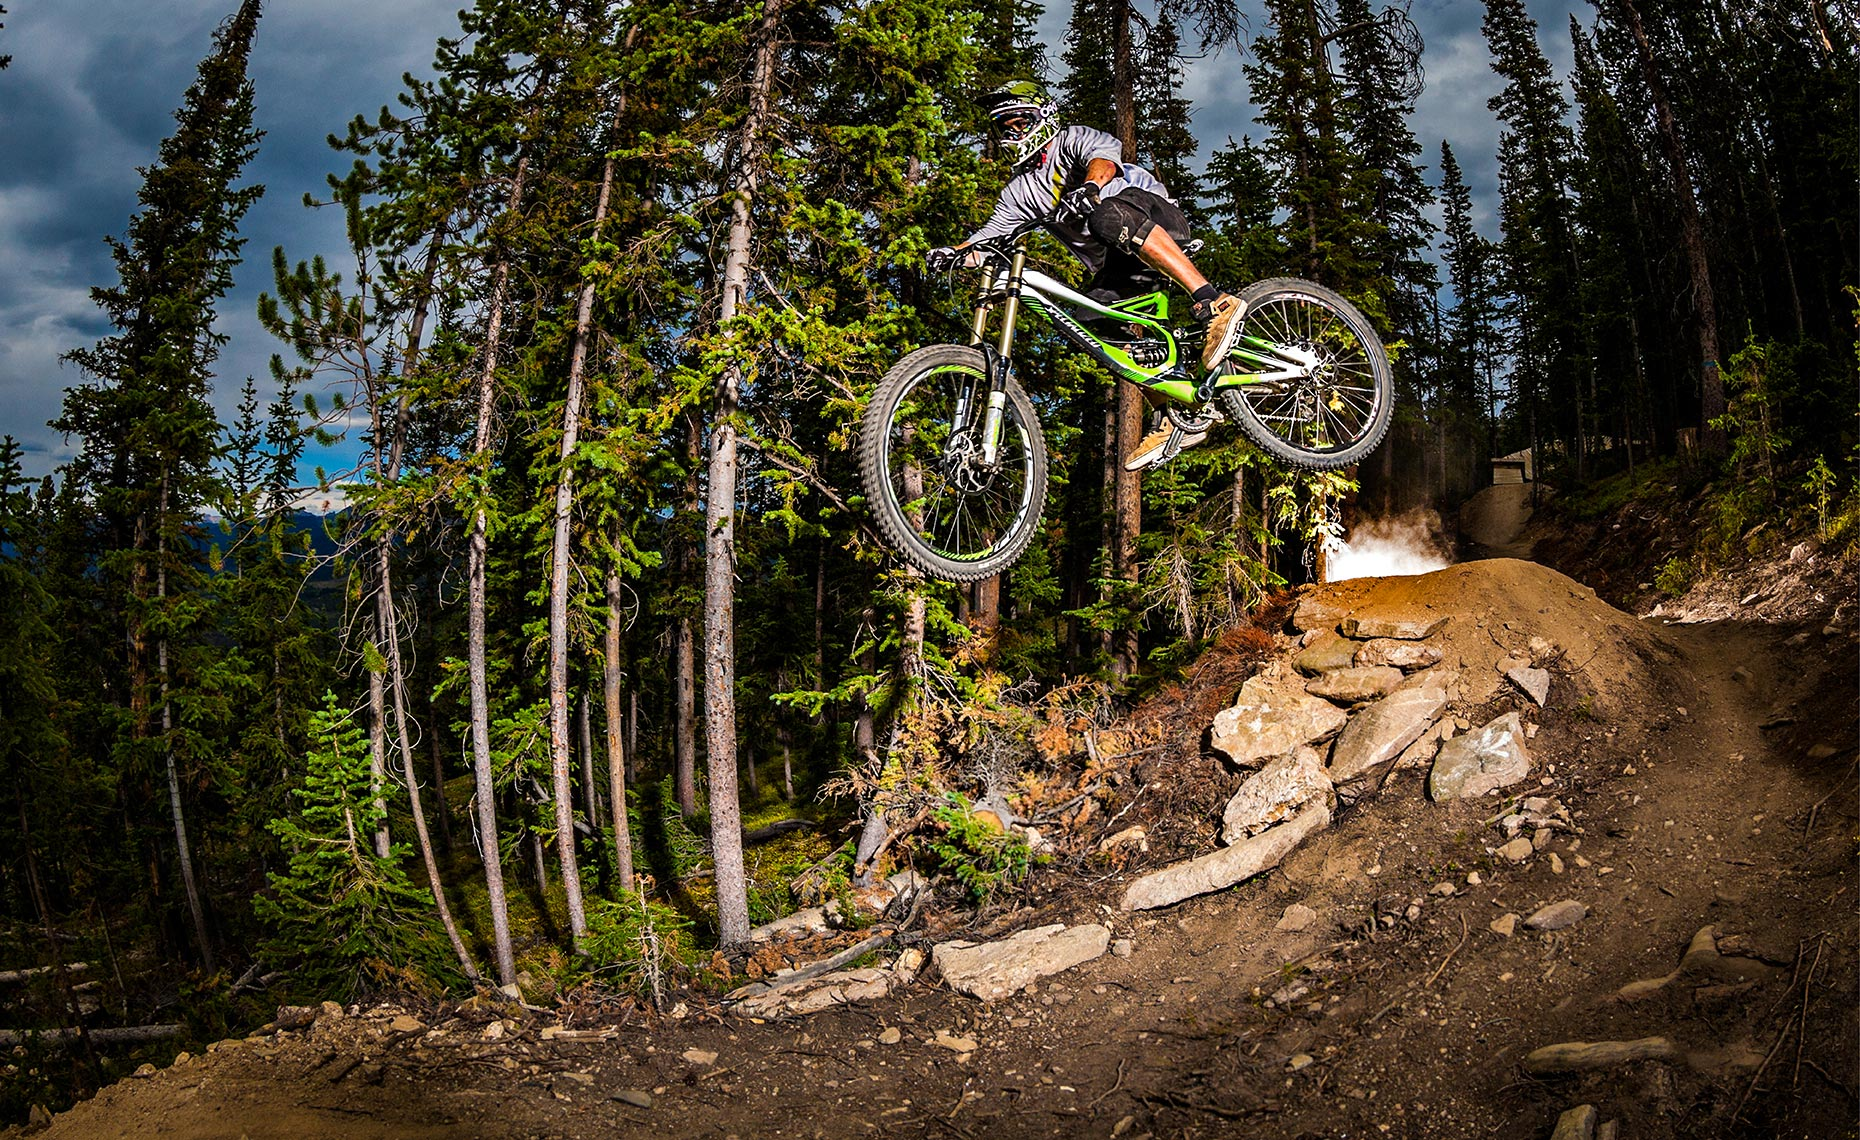 14_Andrew_McKee_Winter_Park_Colorado_Trestle_Bike_Mountain_Biking_Chris_Wellhausen_Photography.JPG